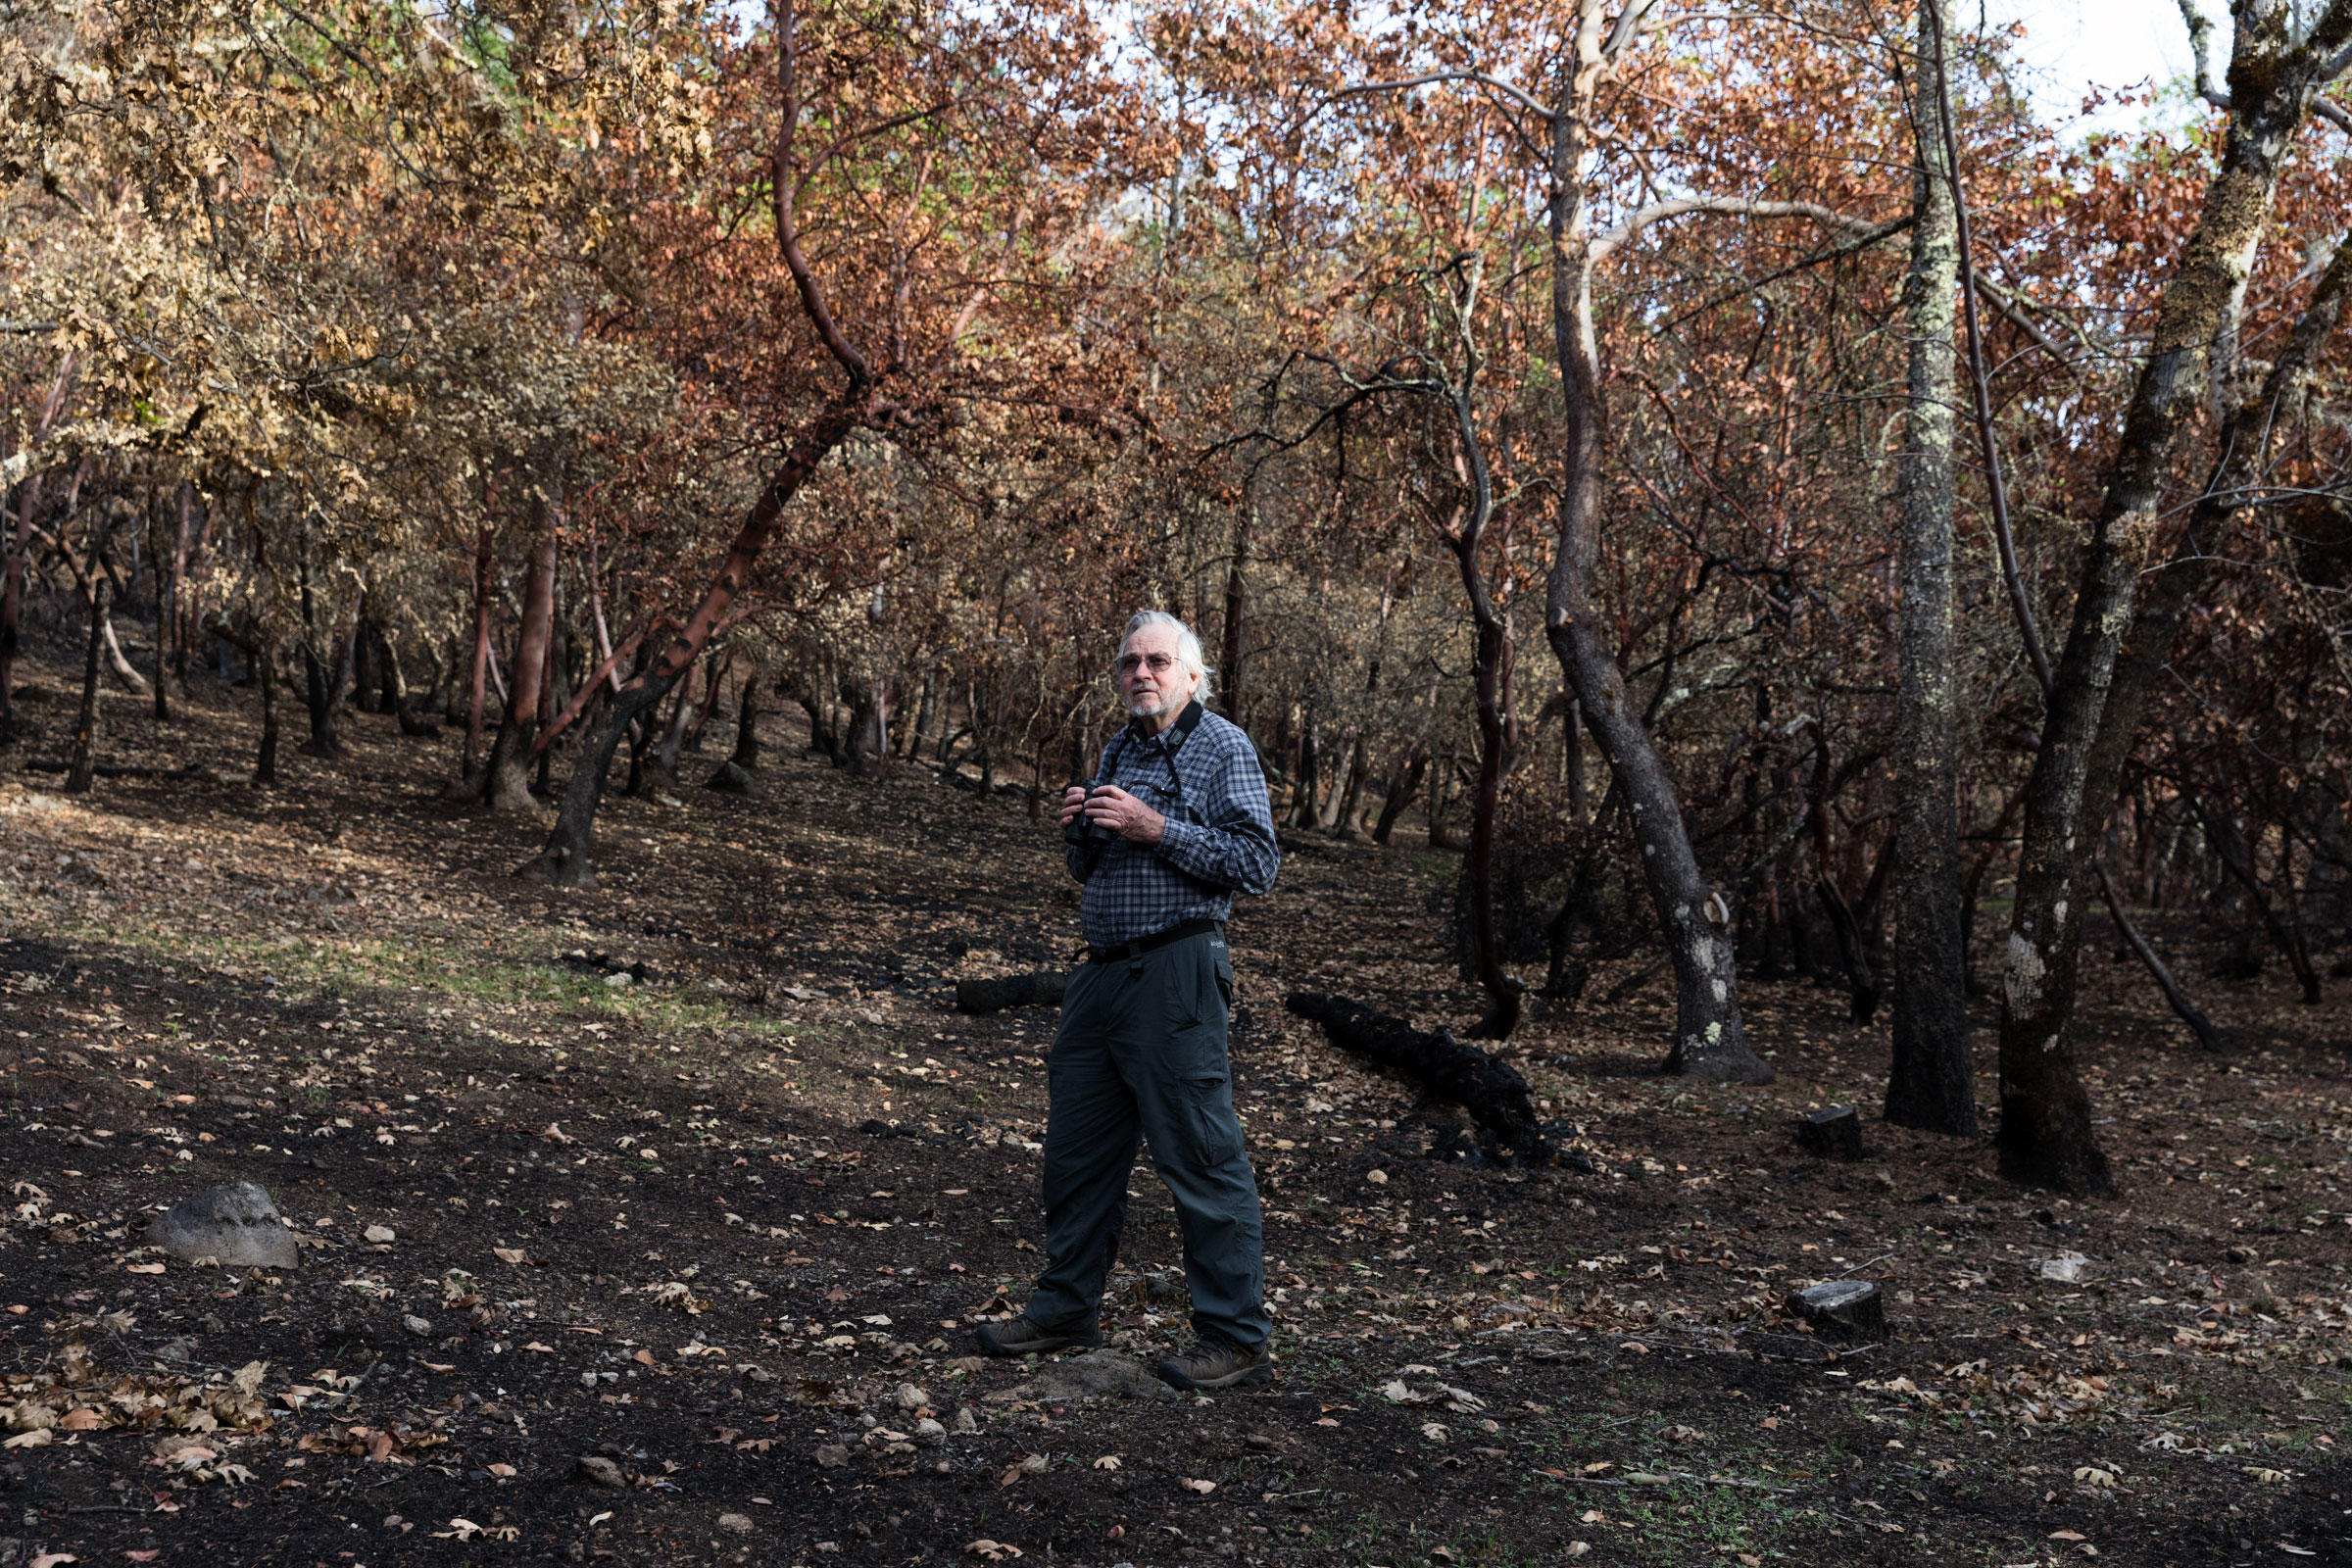 """Rodney Jackson, Trinity birder and founder of the Snow Leopard Conservancy, says: """"Until we learn to manage the landscape with controlled burns, we'll always have massive wildfire."""" Ryan Young"""